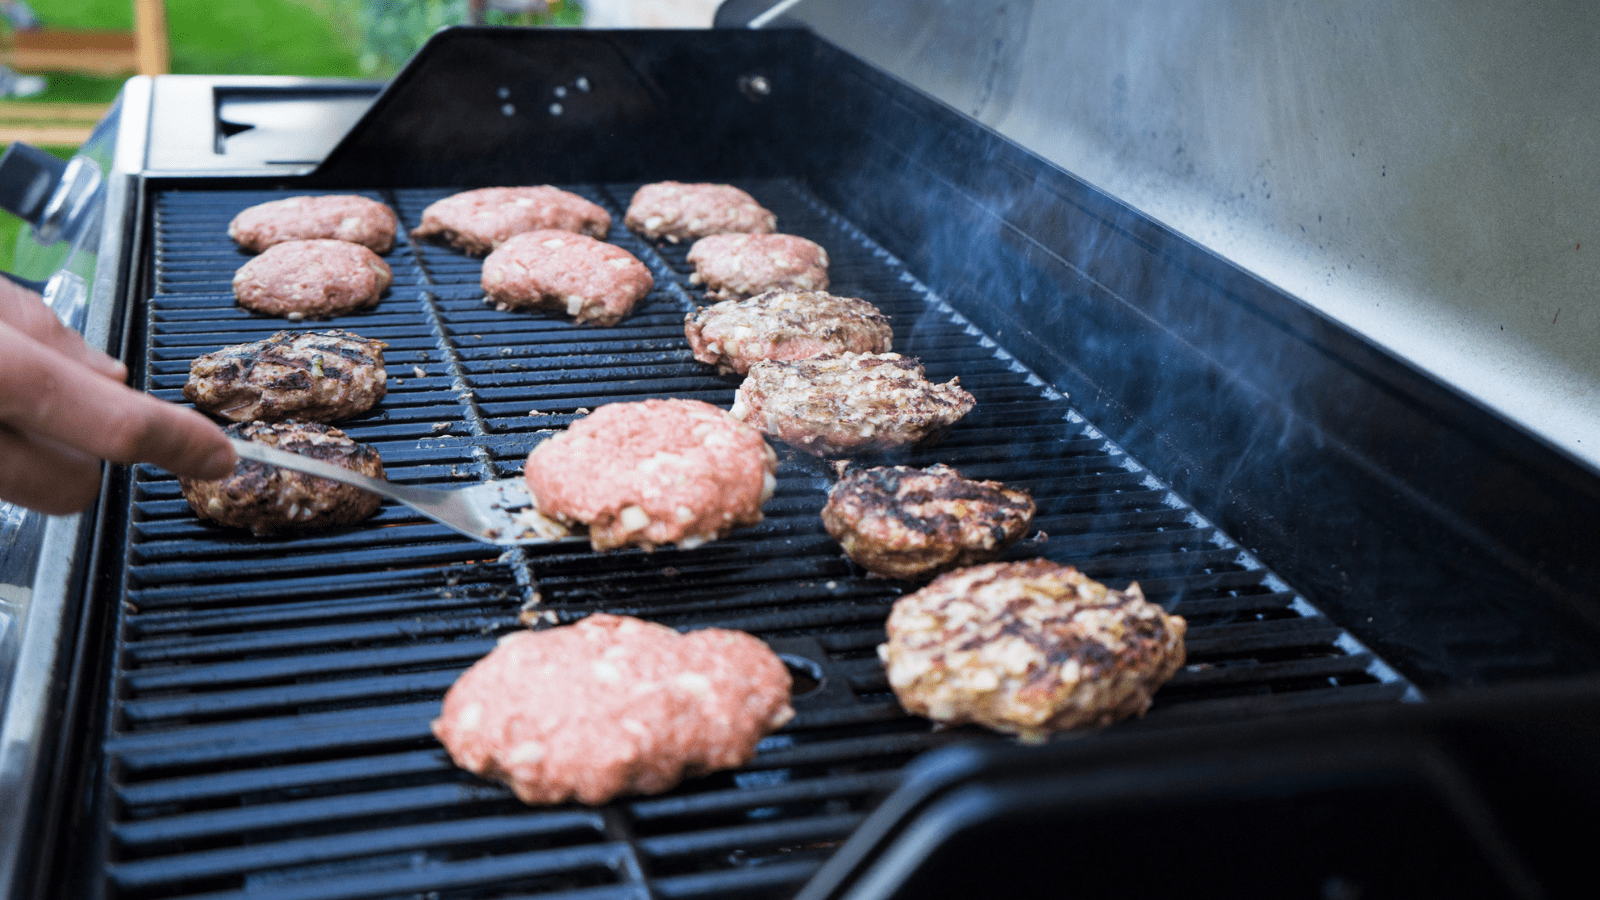 One burger with spatula underneath and a hand ready to flip the burger, multiple burger patties alongside on the same grill.